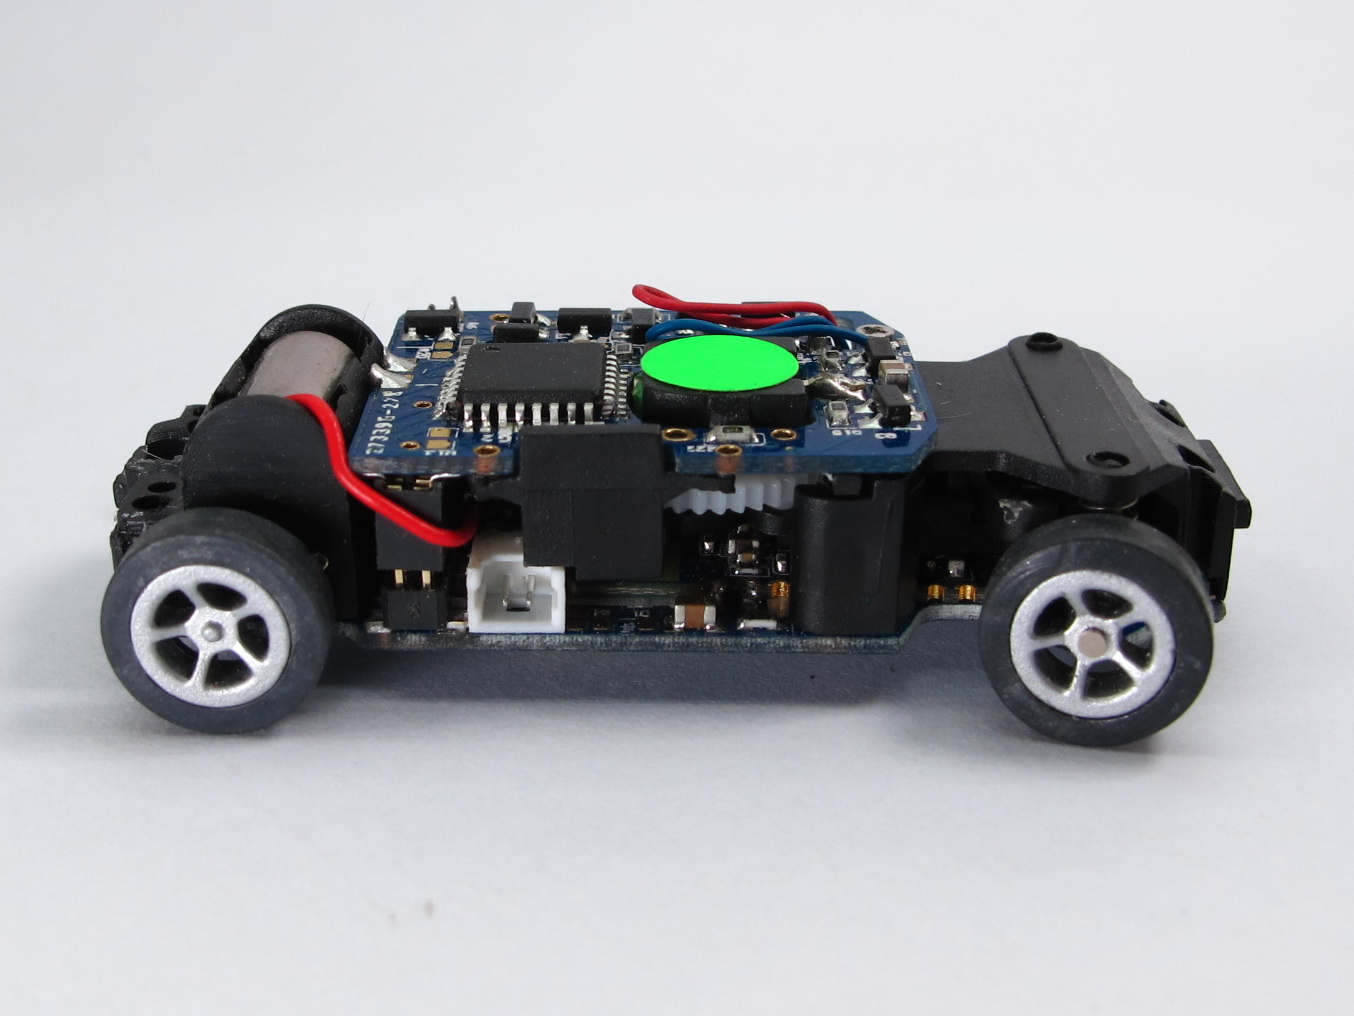 Boron - 1/60 bluetooth car